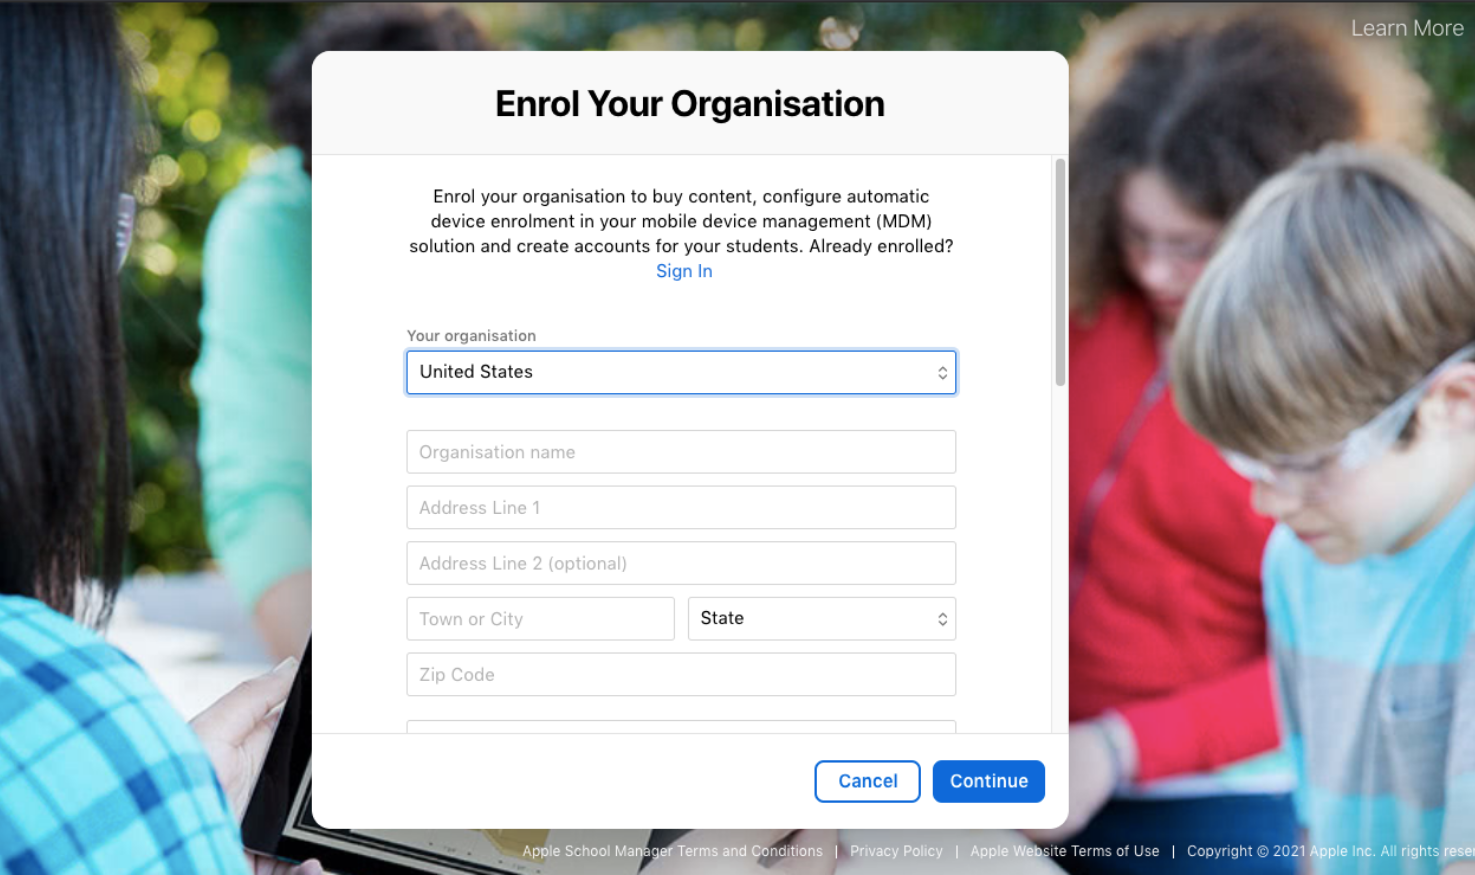 Apple School Manager sign-up page